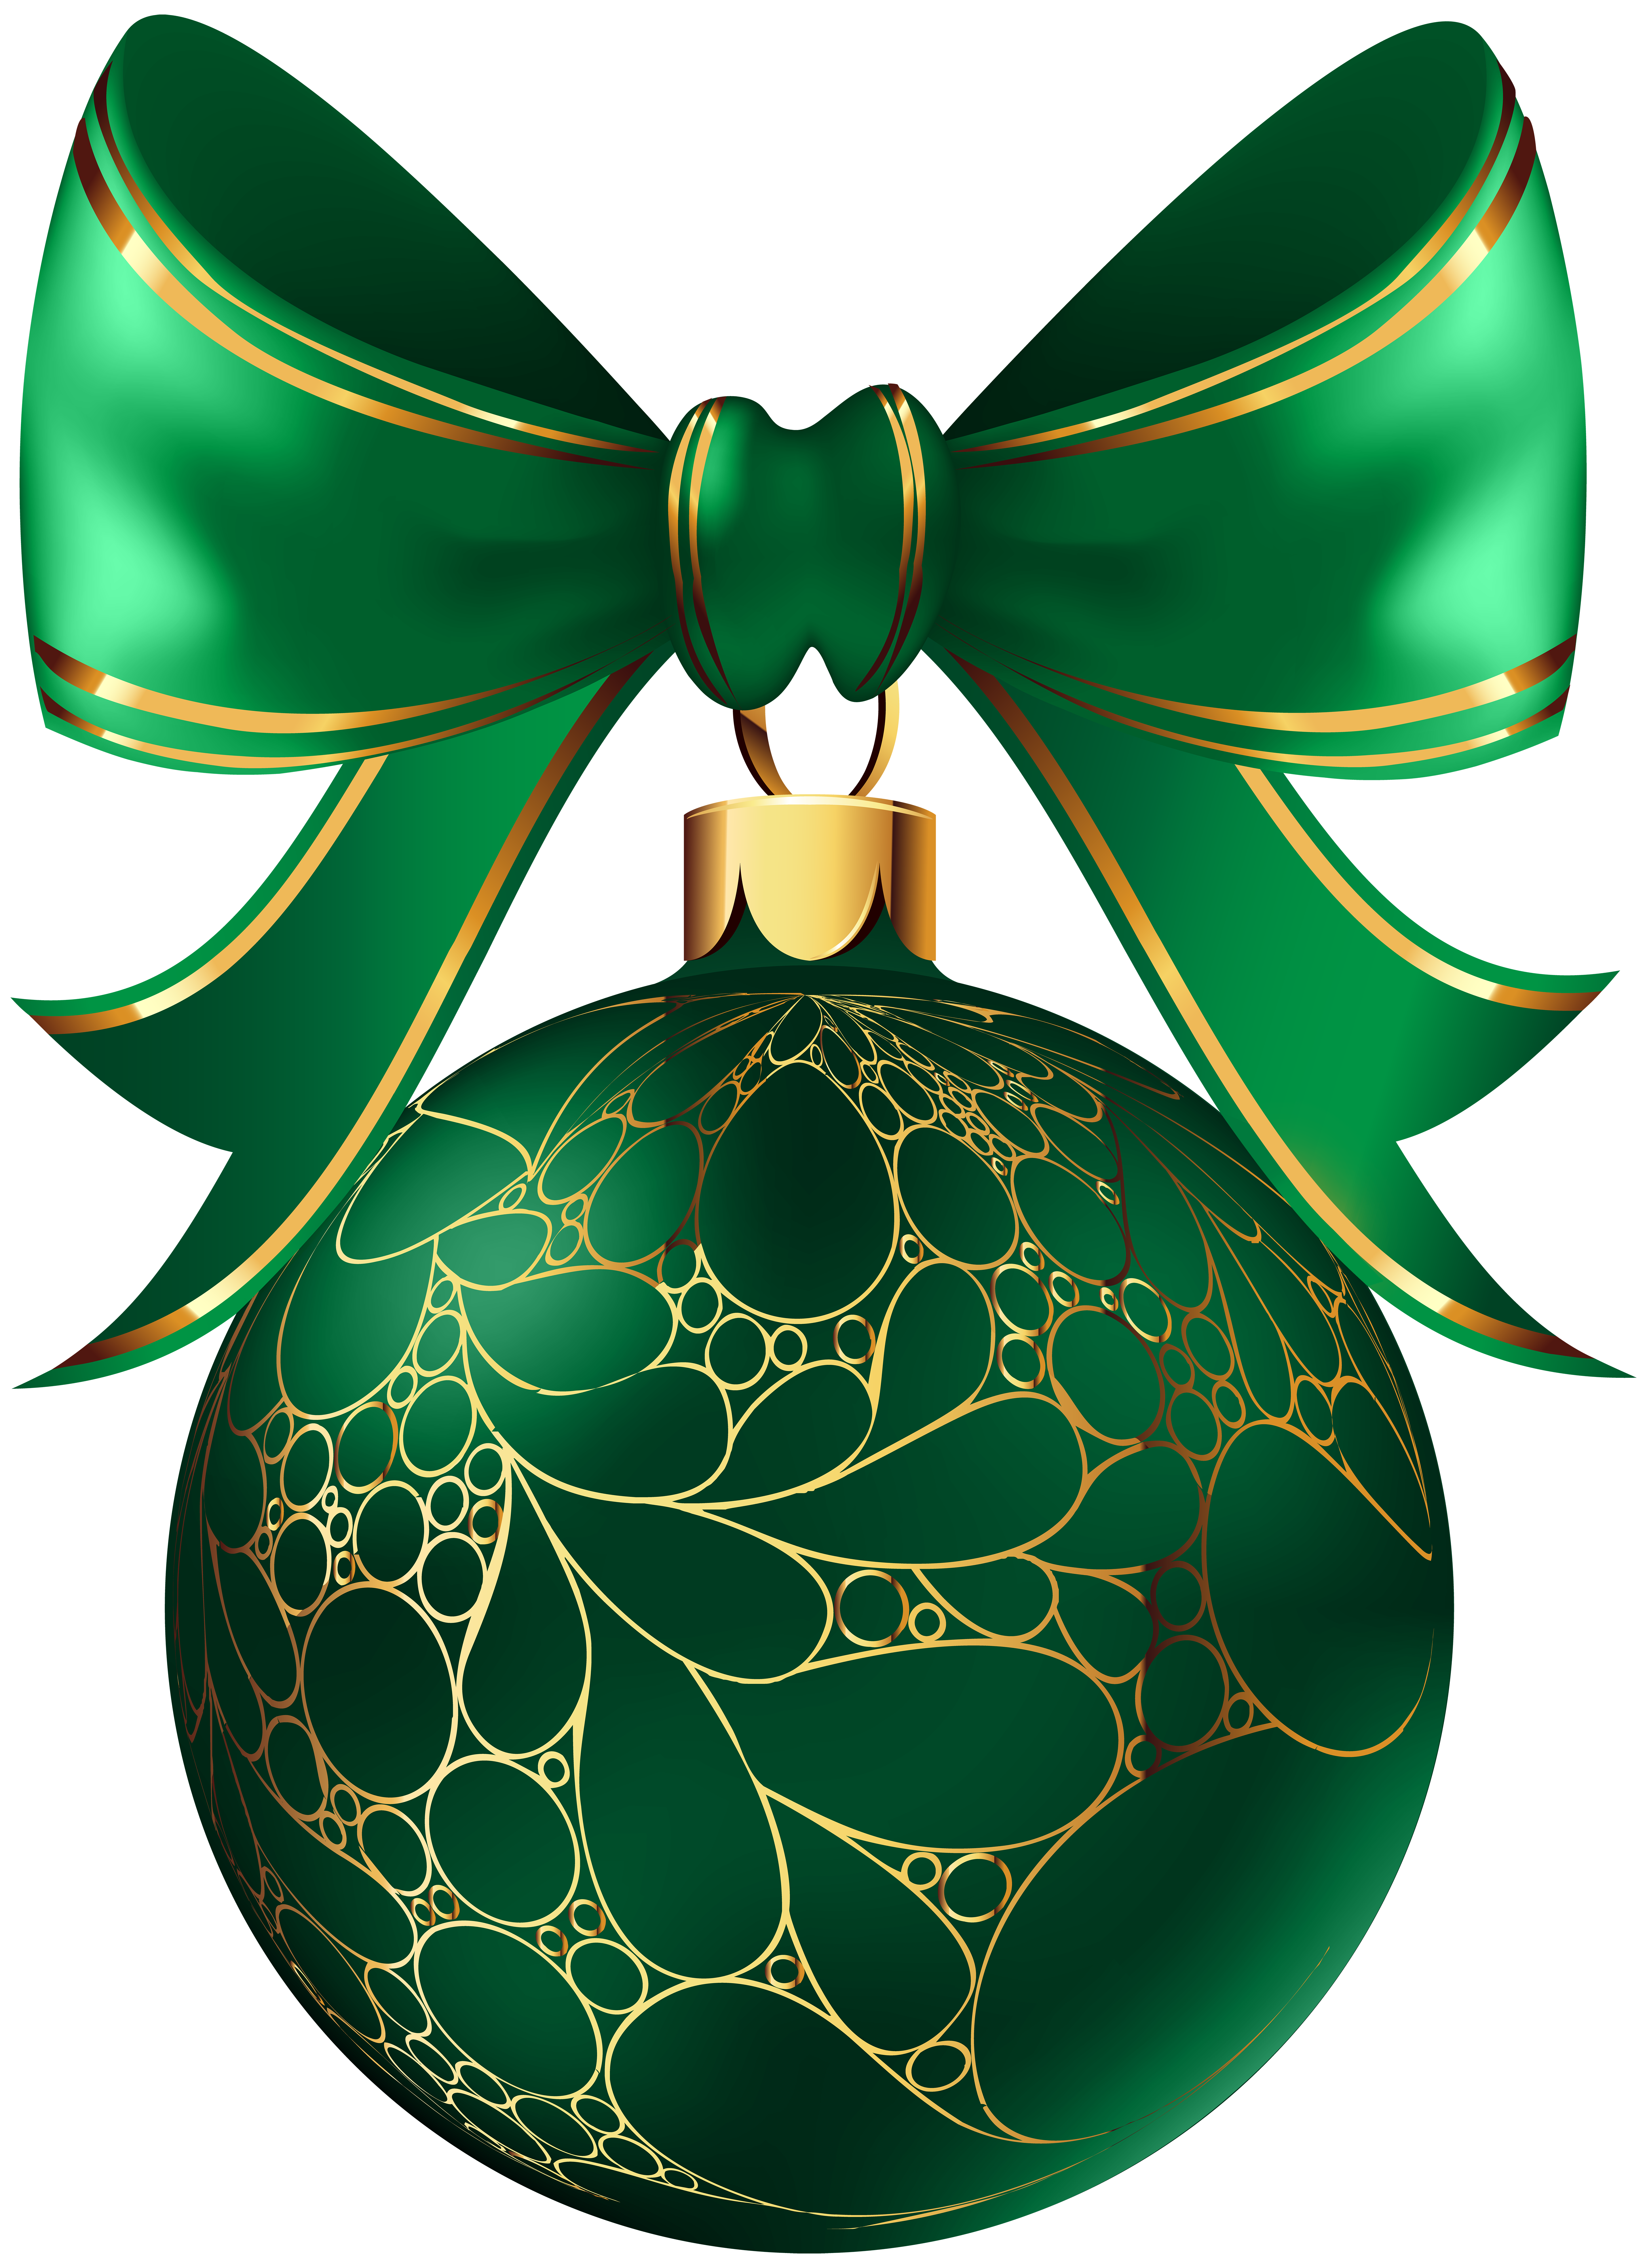 Christmas Ball Green Transparent Png Image Gallery Yopriceville High Quality Images And Transparent Christmas Bells Christmas Ornaments Christmas Pictures